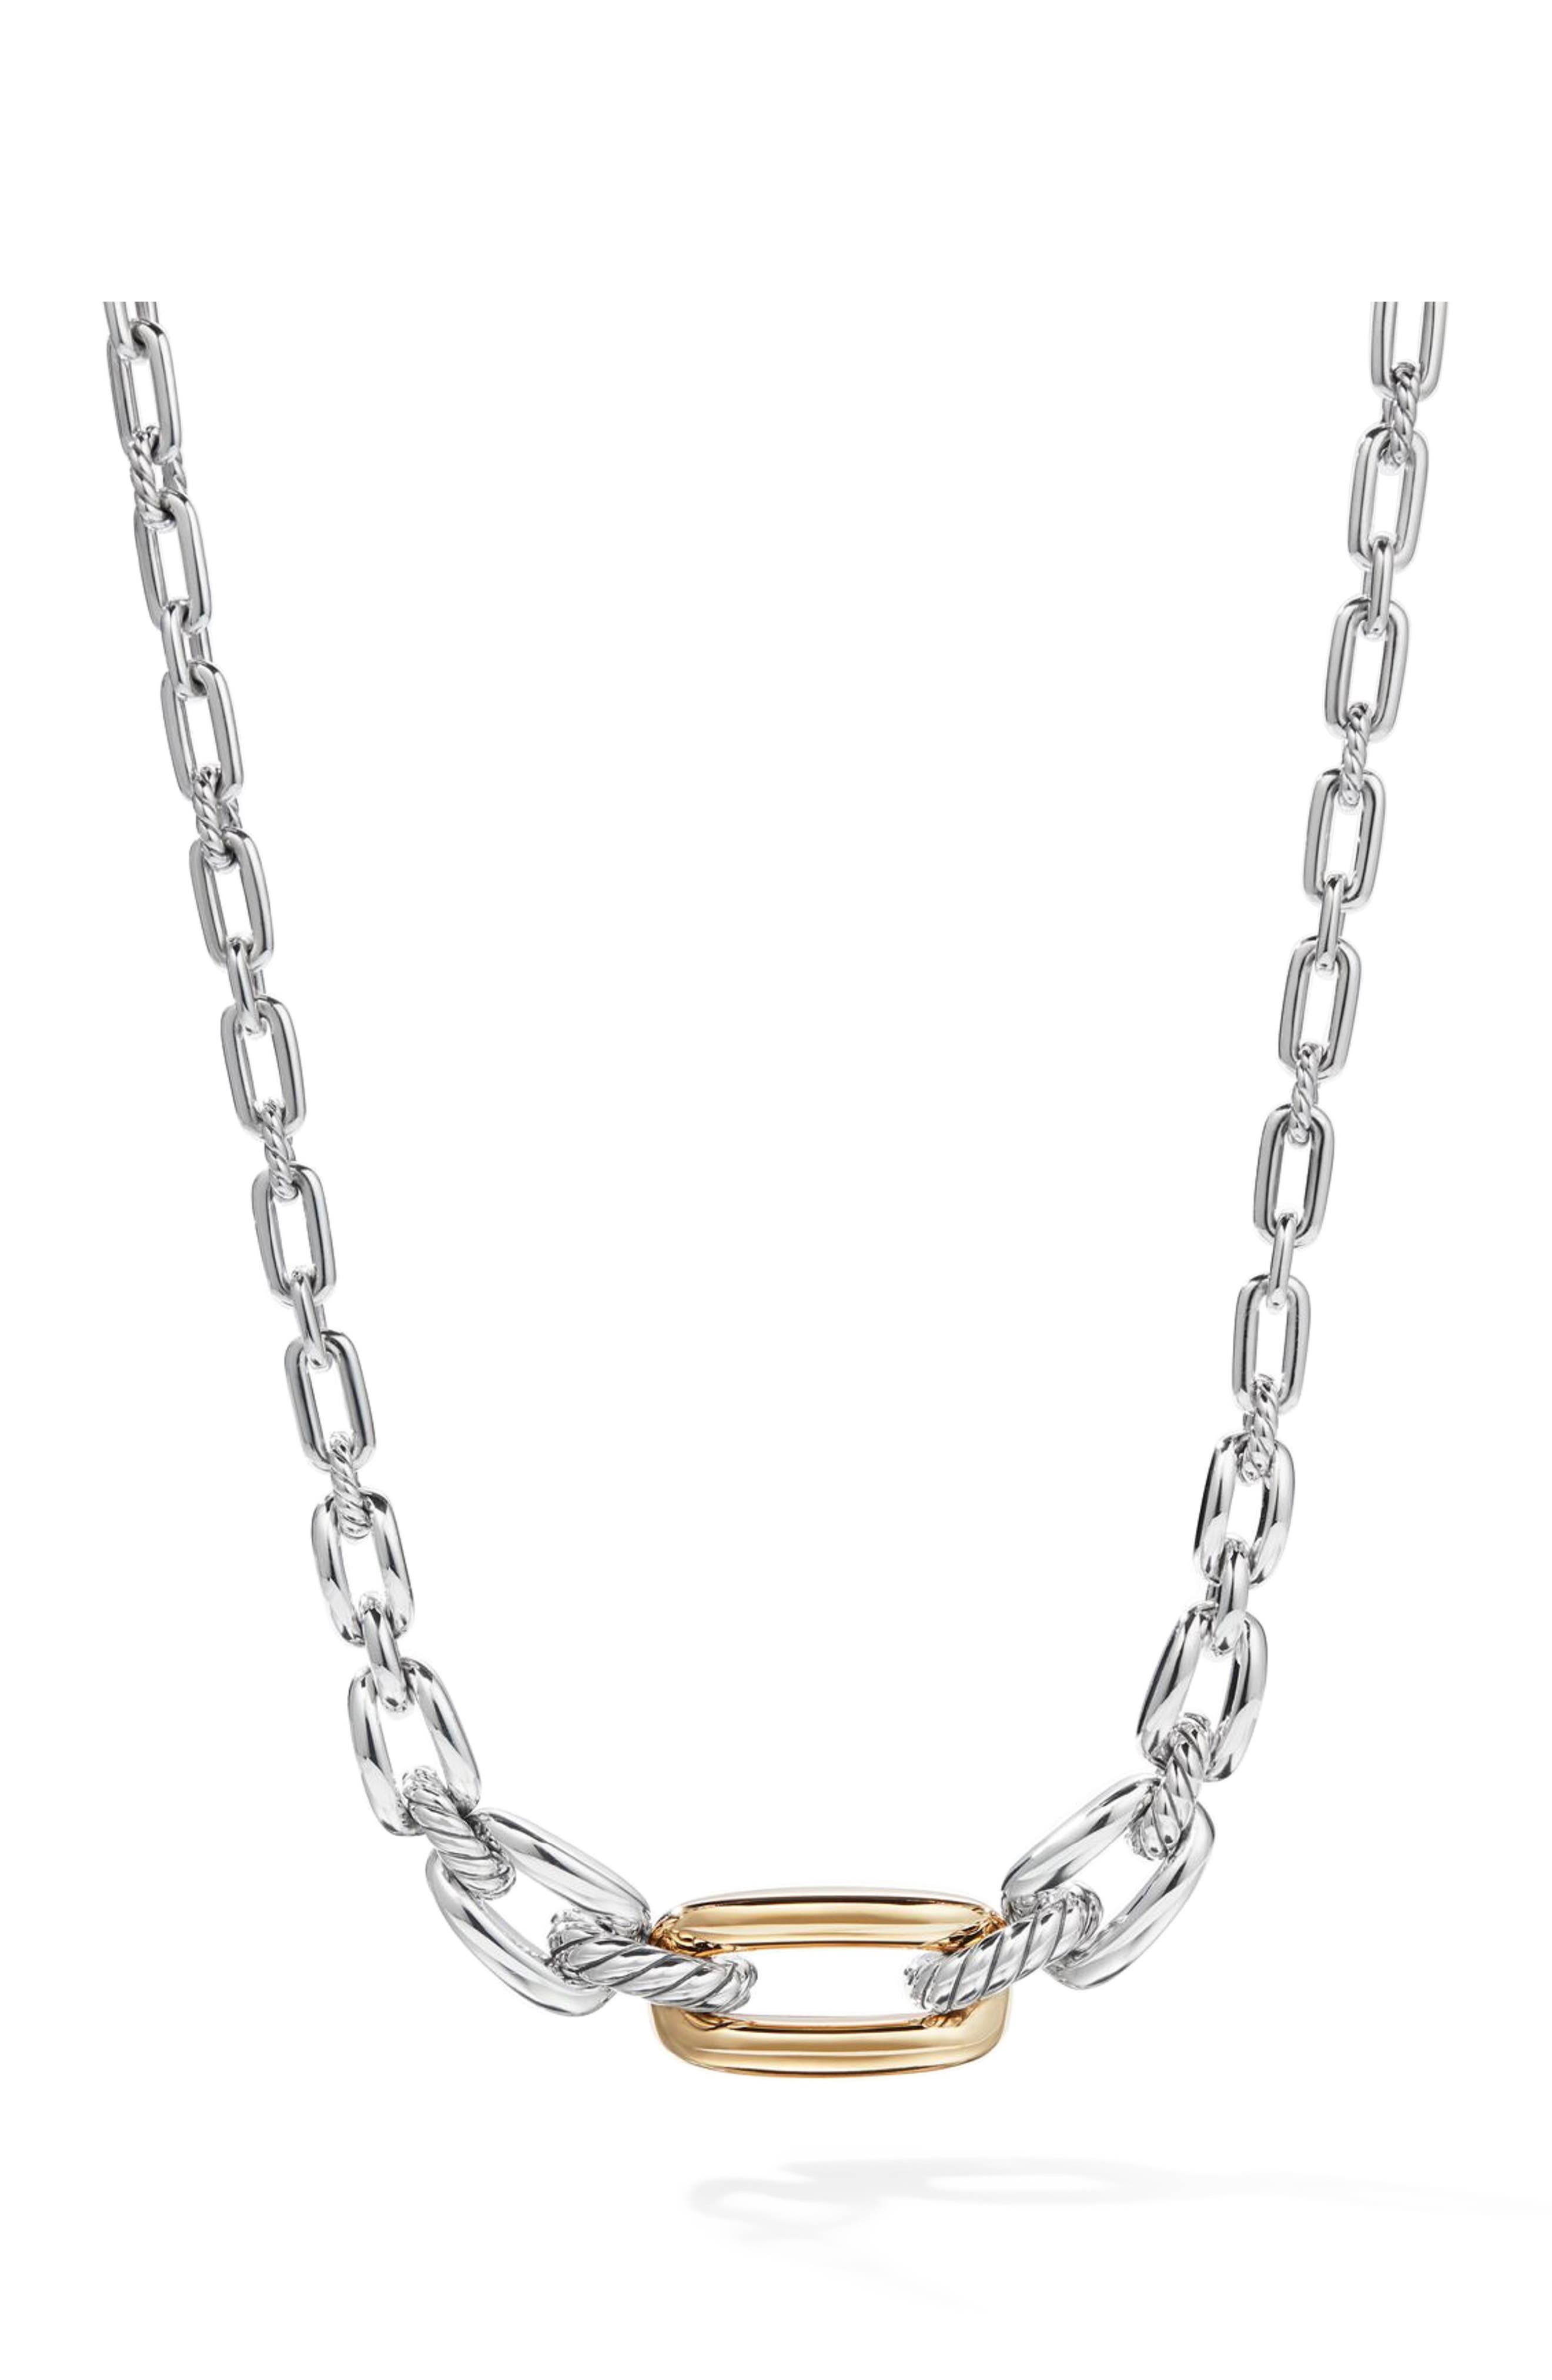 Wellesley Link Short Necklace with 18k Gold,                             Main thumbnail 1, color,                             18K YELLOW GOLD/ SILVER